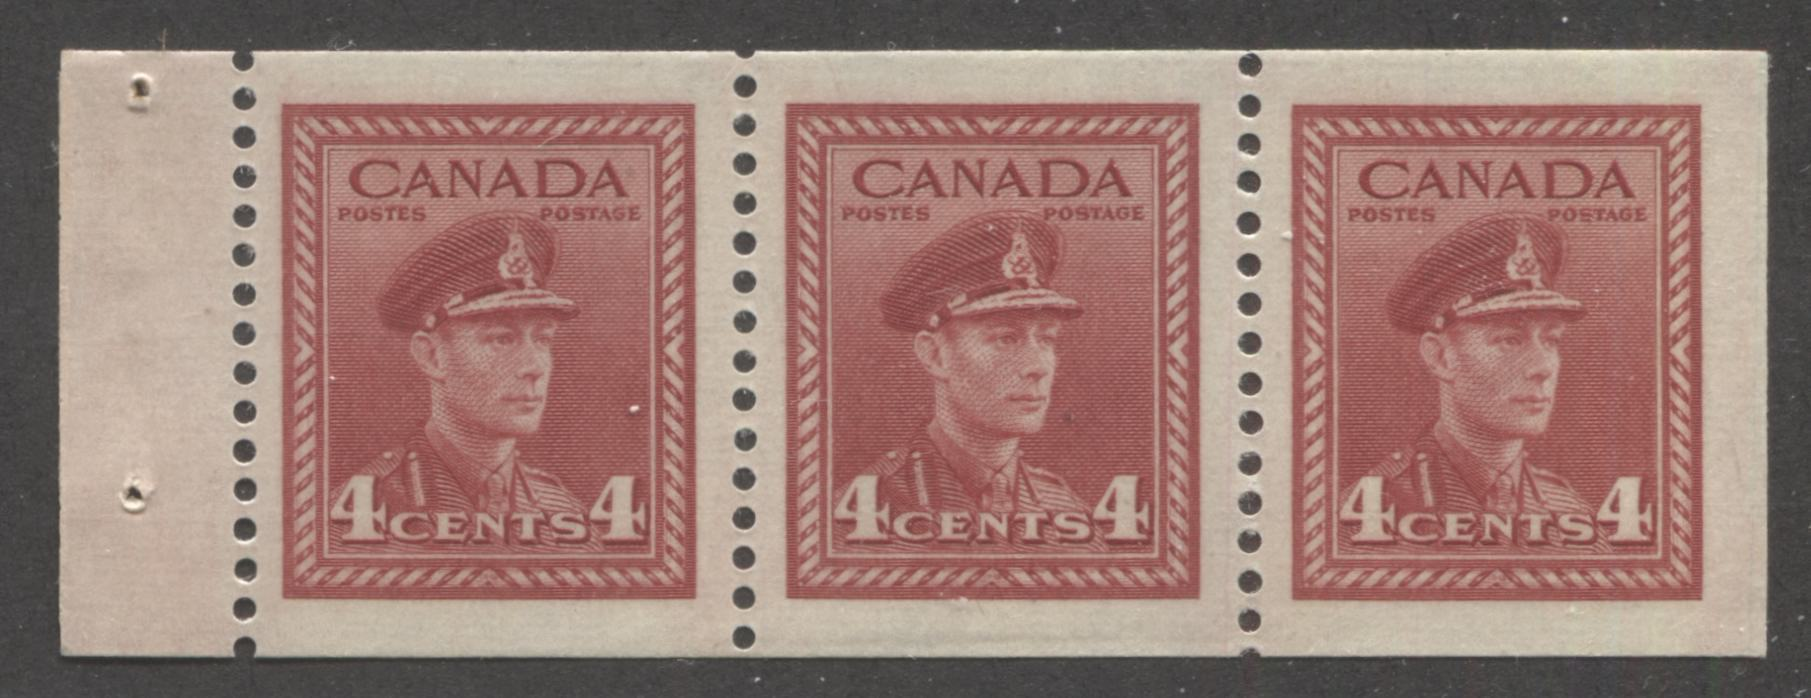 shopify auction Brixton Chrome Canada #254b 4c Carmine-Red King George VI, 1942-1949 War Issue, A Very Fine Mint NH Example of the Chewing Gum Booklet Pane-141528-86230